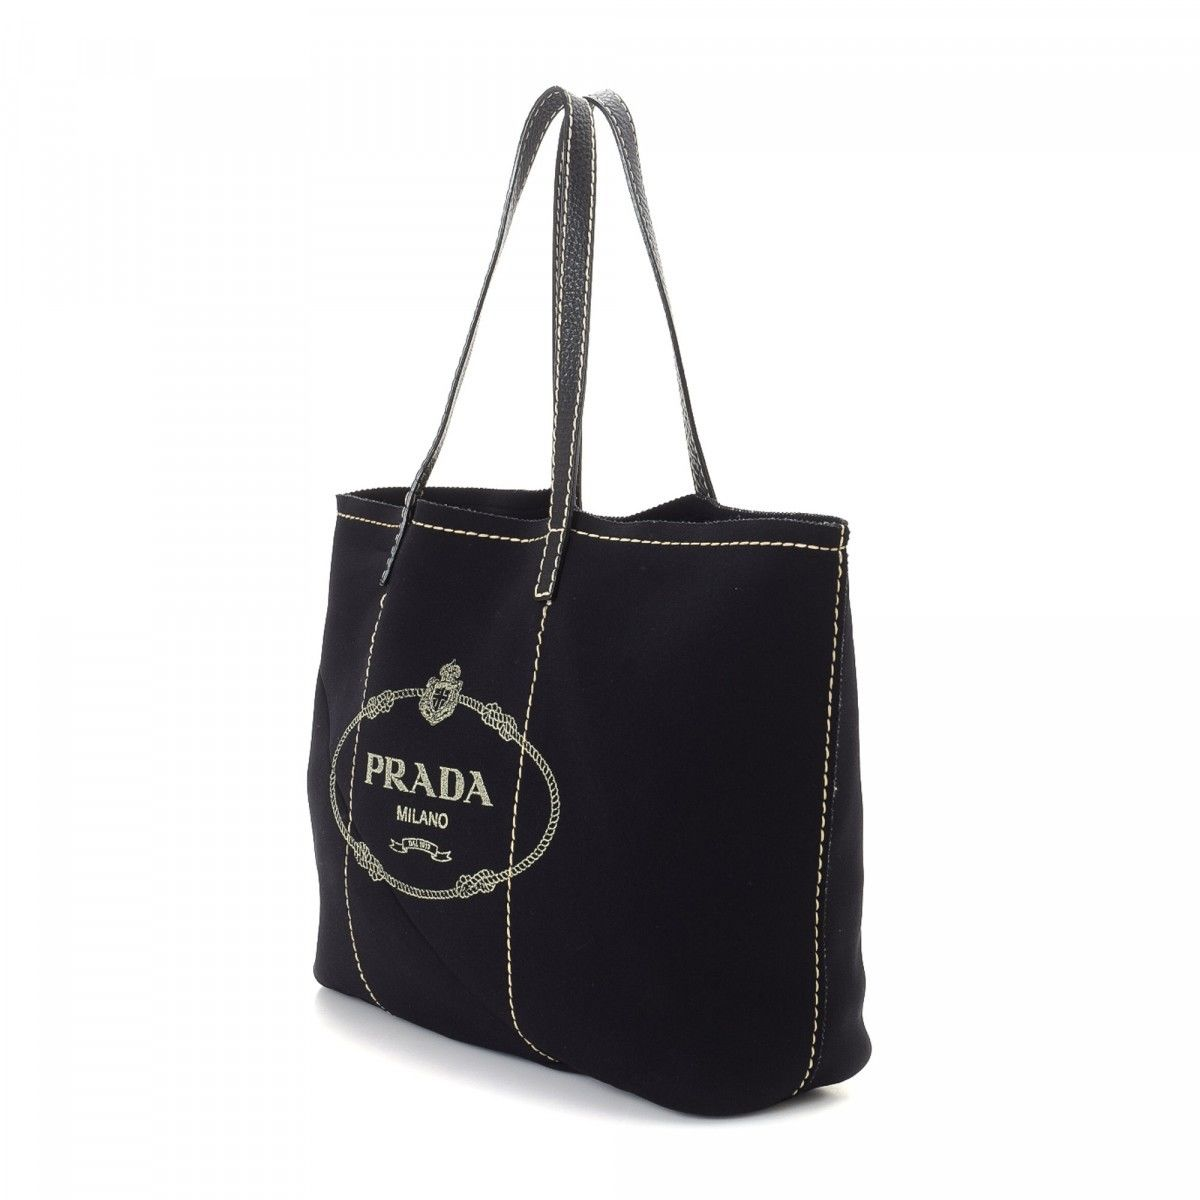 939efd4ac44d Prada Neoprene Tote Bag Neoprene - LXRandCo - Pre-Owned Luxury Vintage